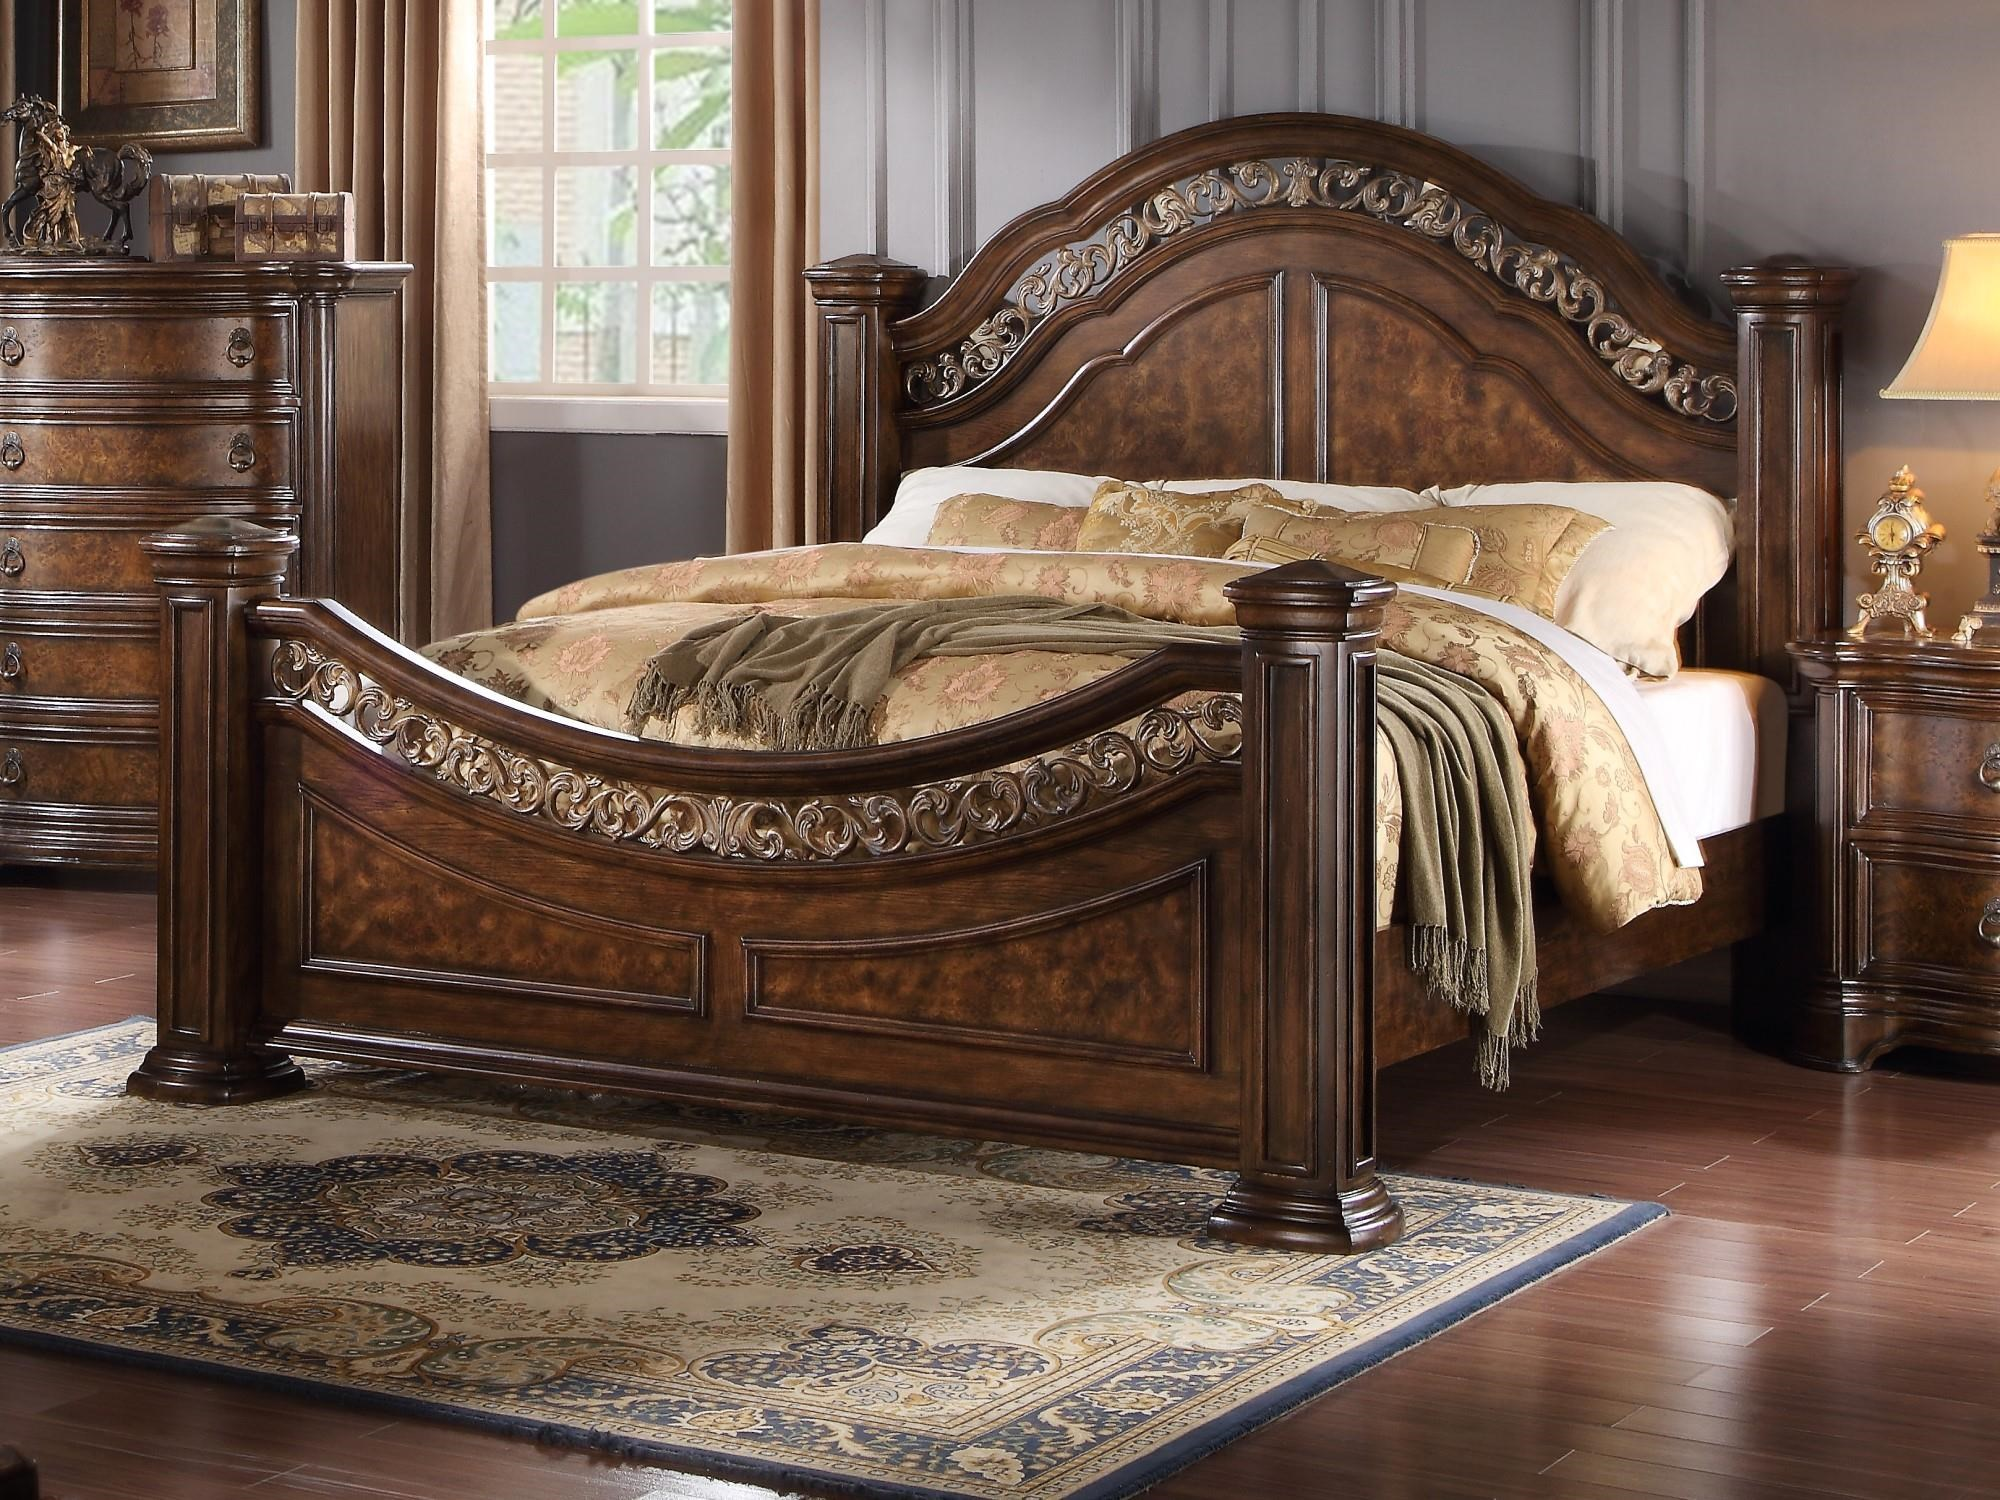 King Bed with Metal Inserts